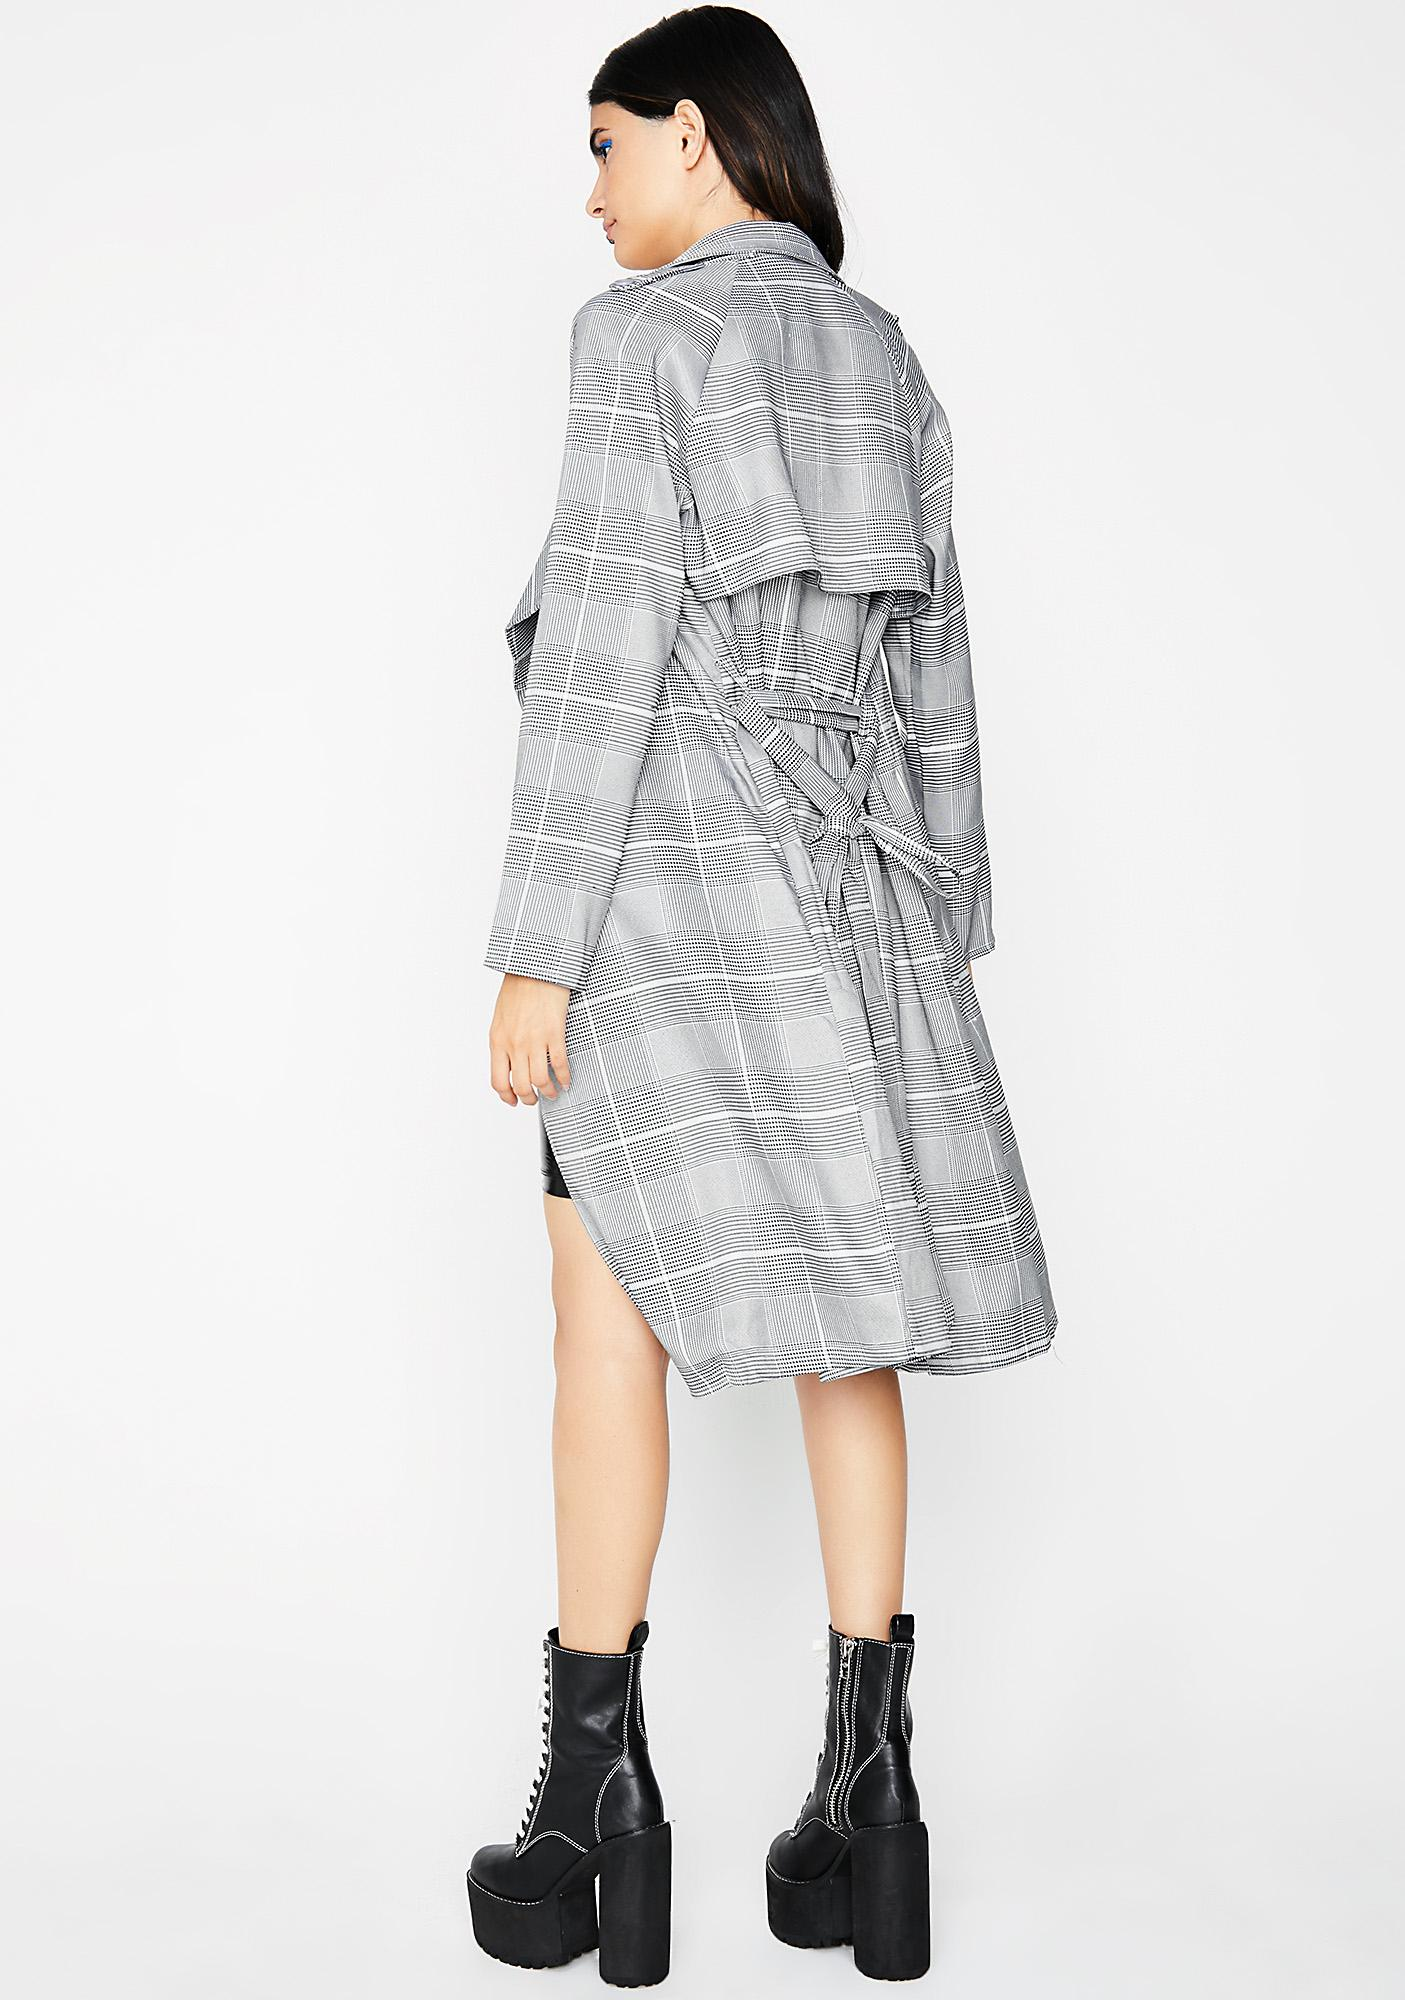 Book Worm Plaid Coat